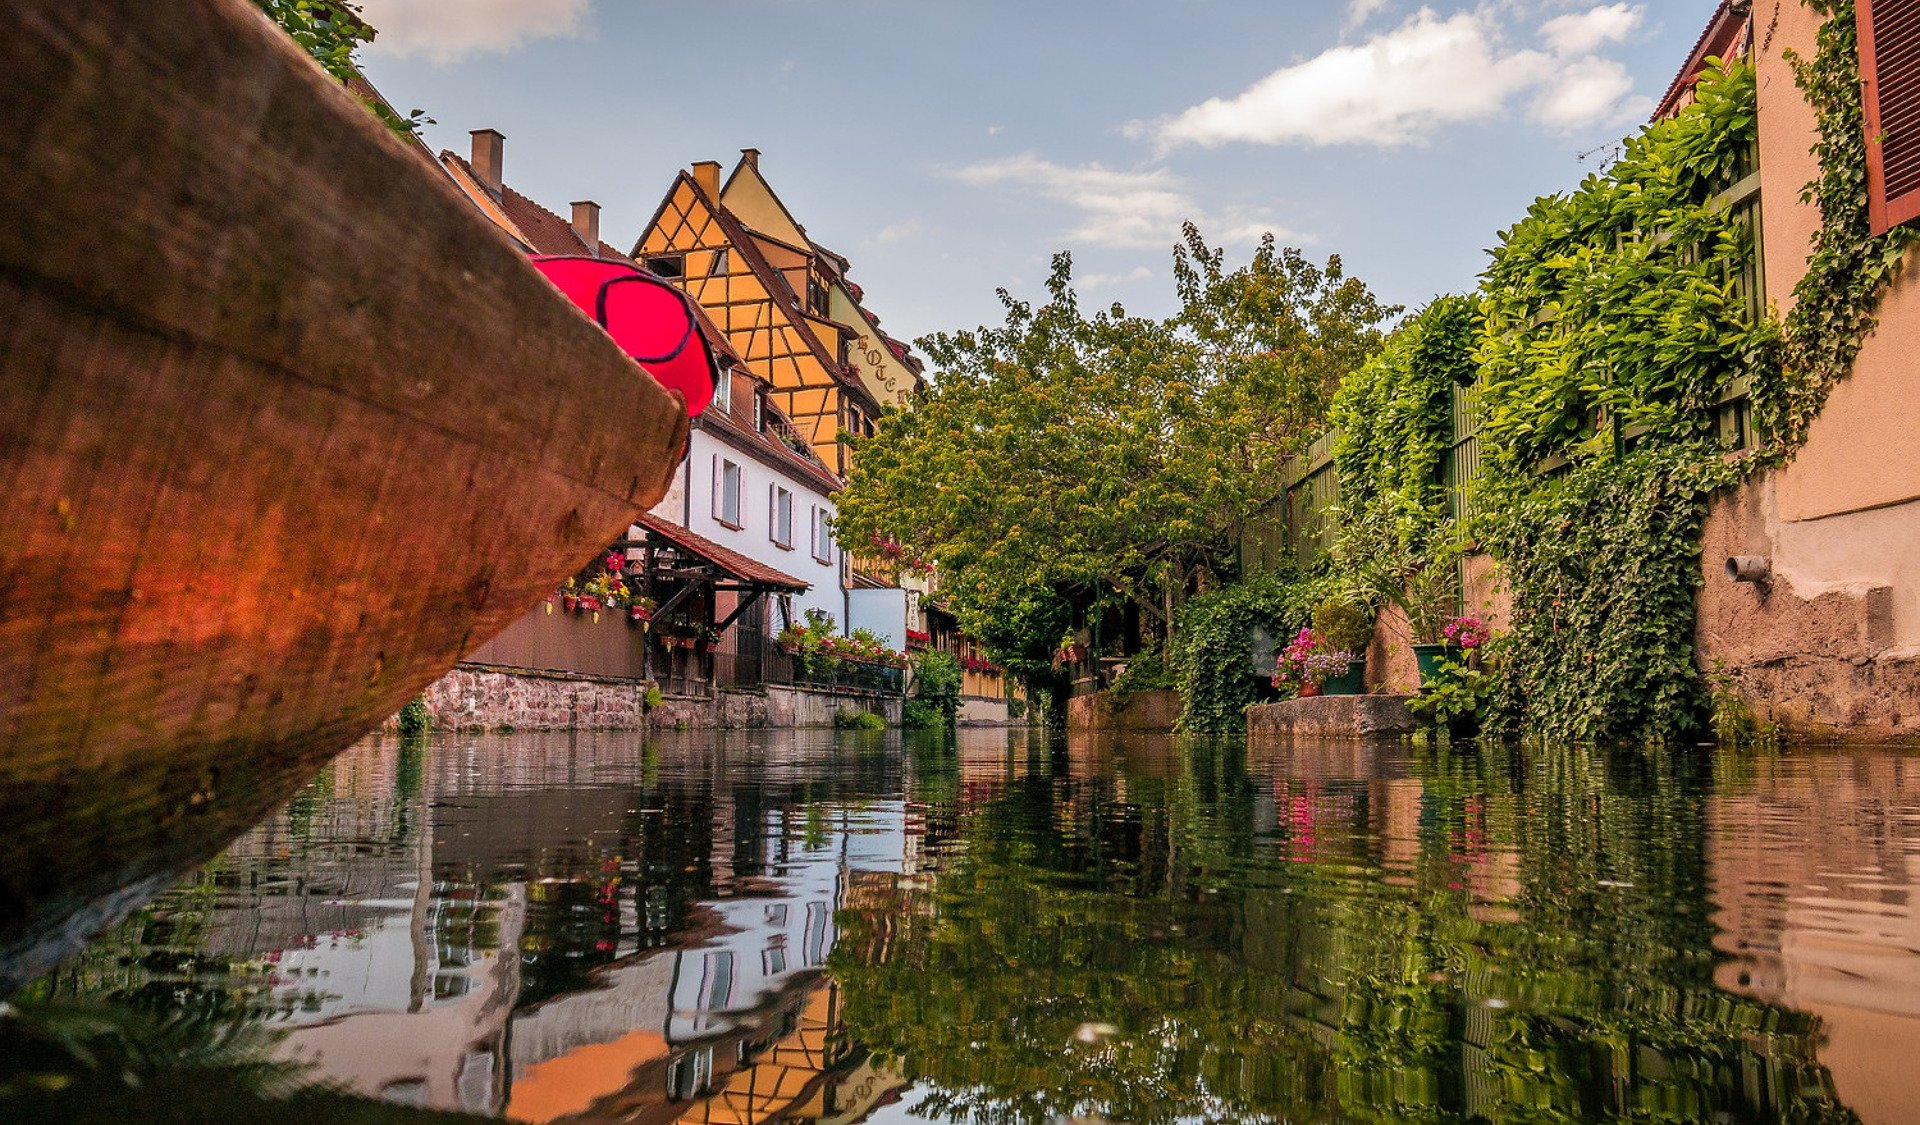 boat-canals-private tour-Colmar-Alsace-France